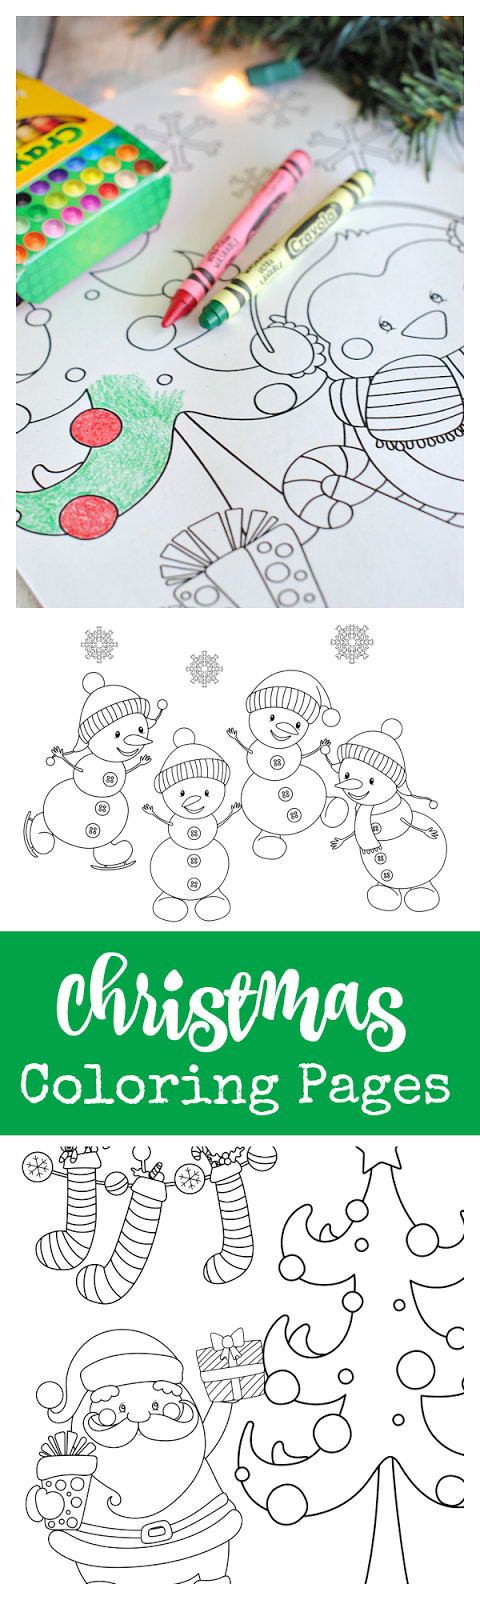 http://crazylittleprojects.com/2015/11/free-printable-christmas-coloring-pages.html